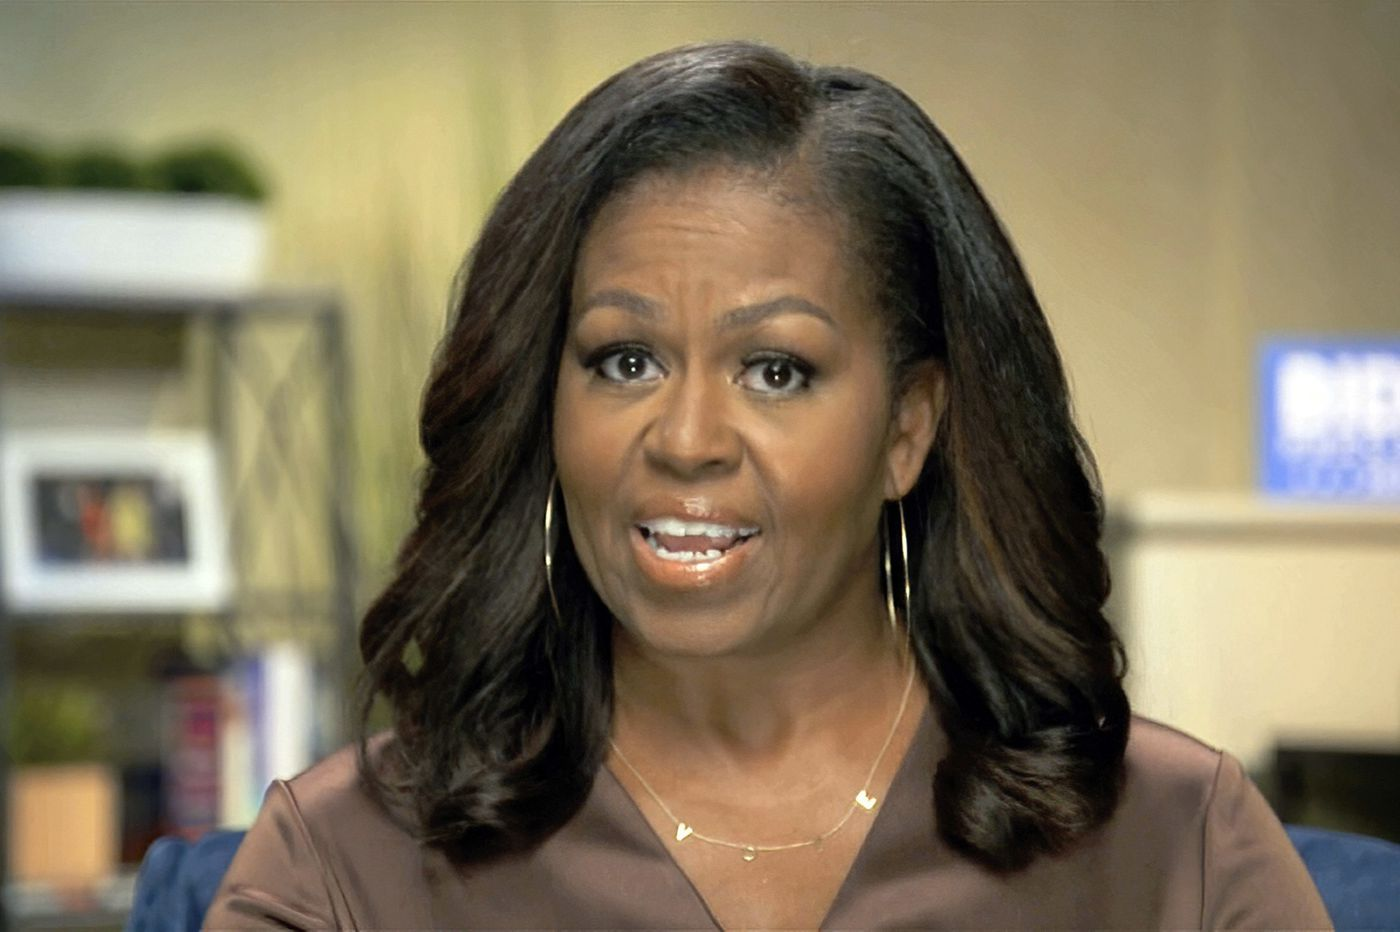 Fact-checking Michelle Obama's convention statement that 2 votes per precinct helped Trump win